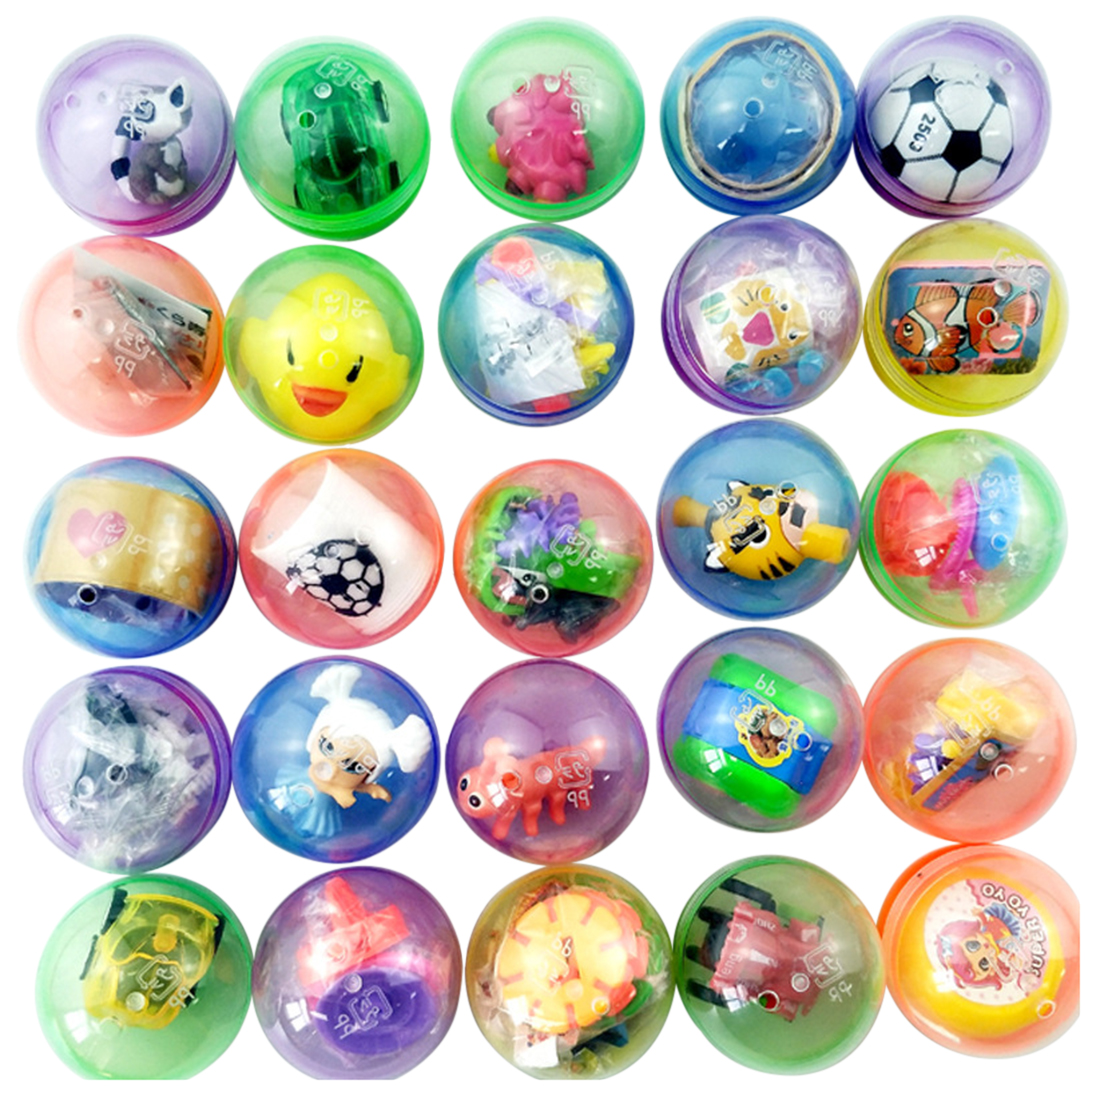 100Pcs 5cm Filled Easter Eggs Plastic Surprise Party Eggs For Easter Hunt - Random